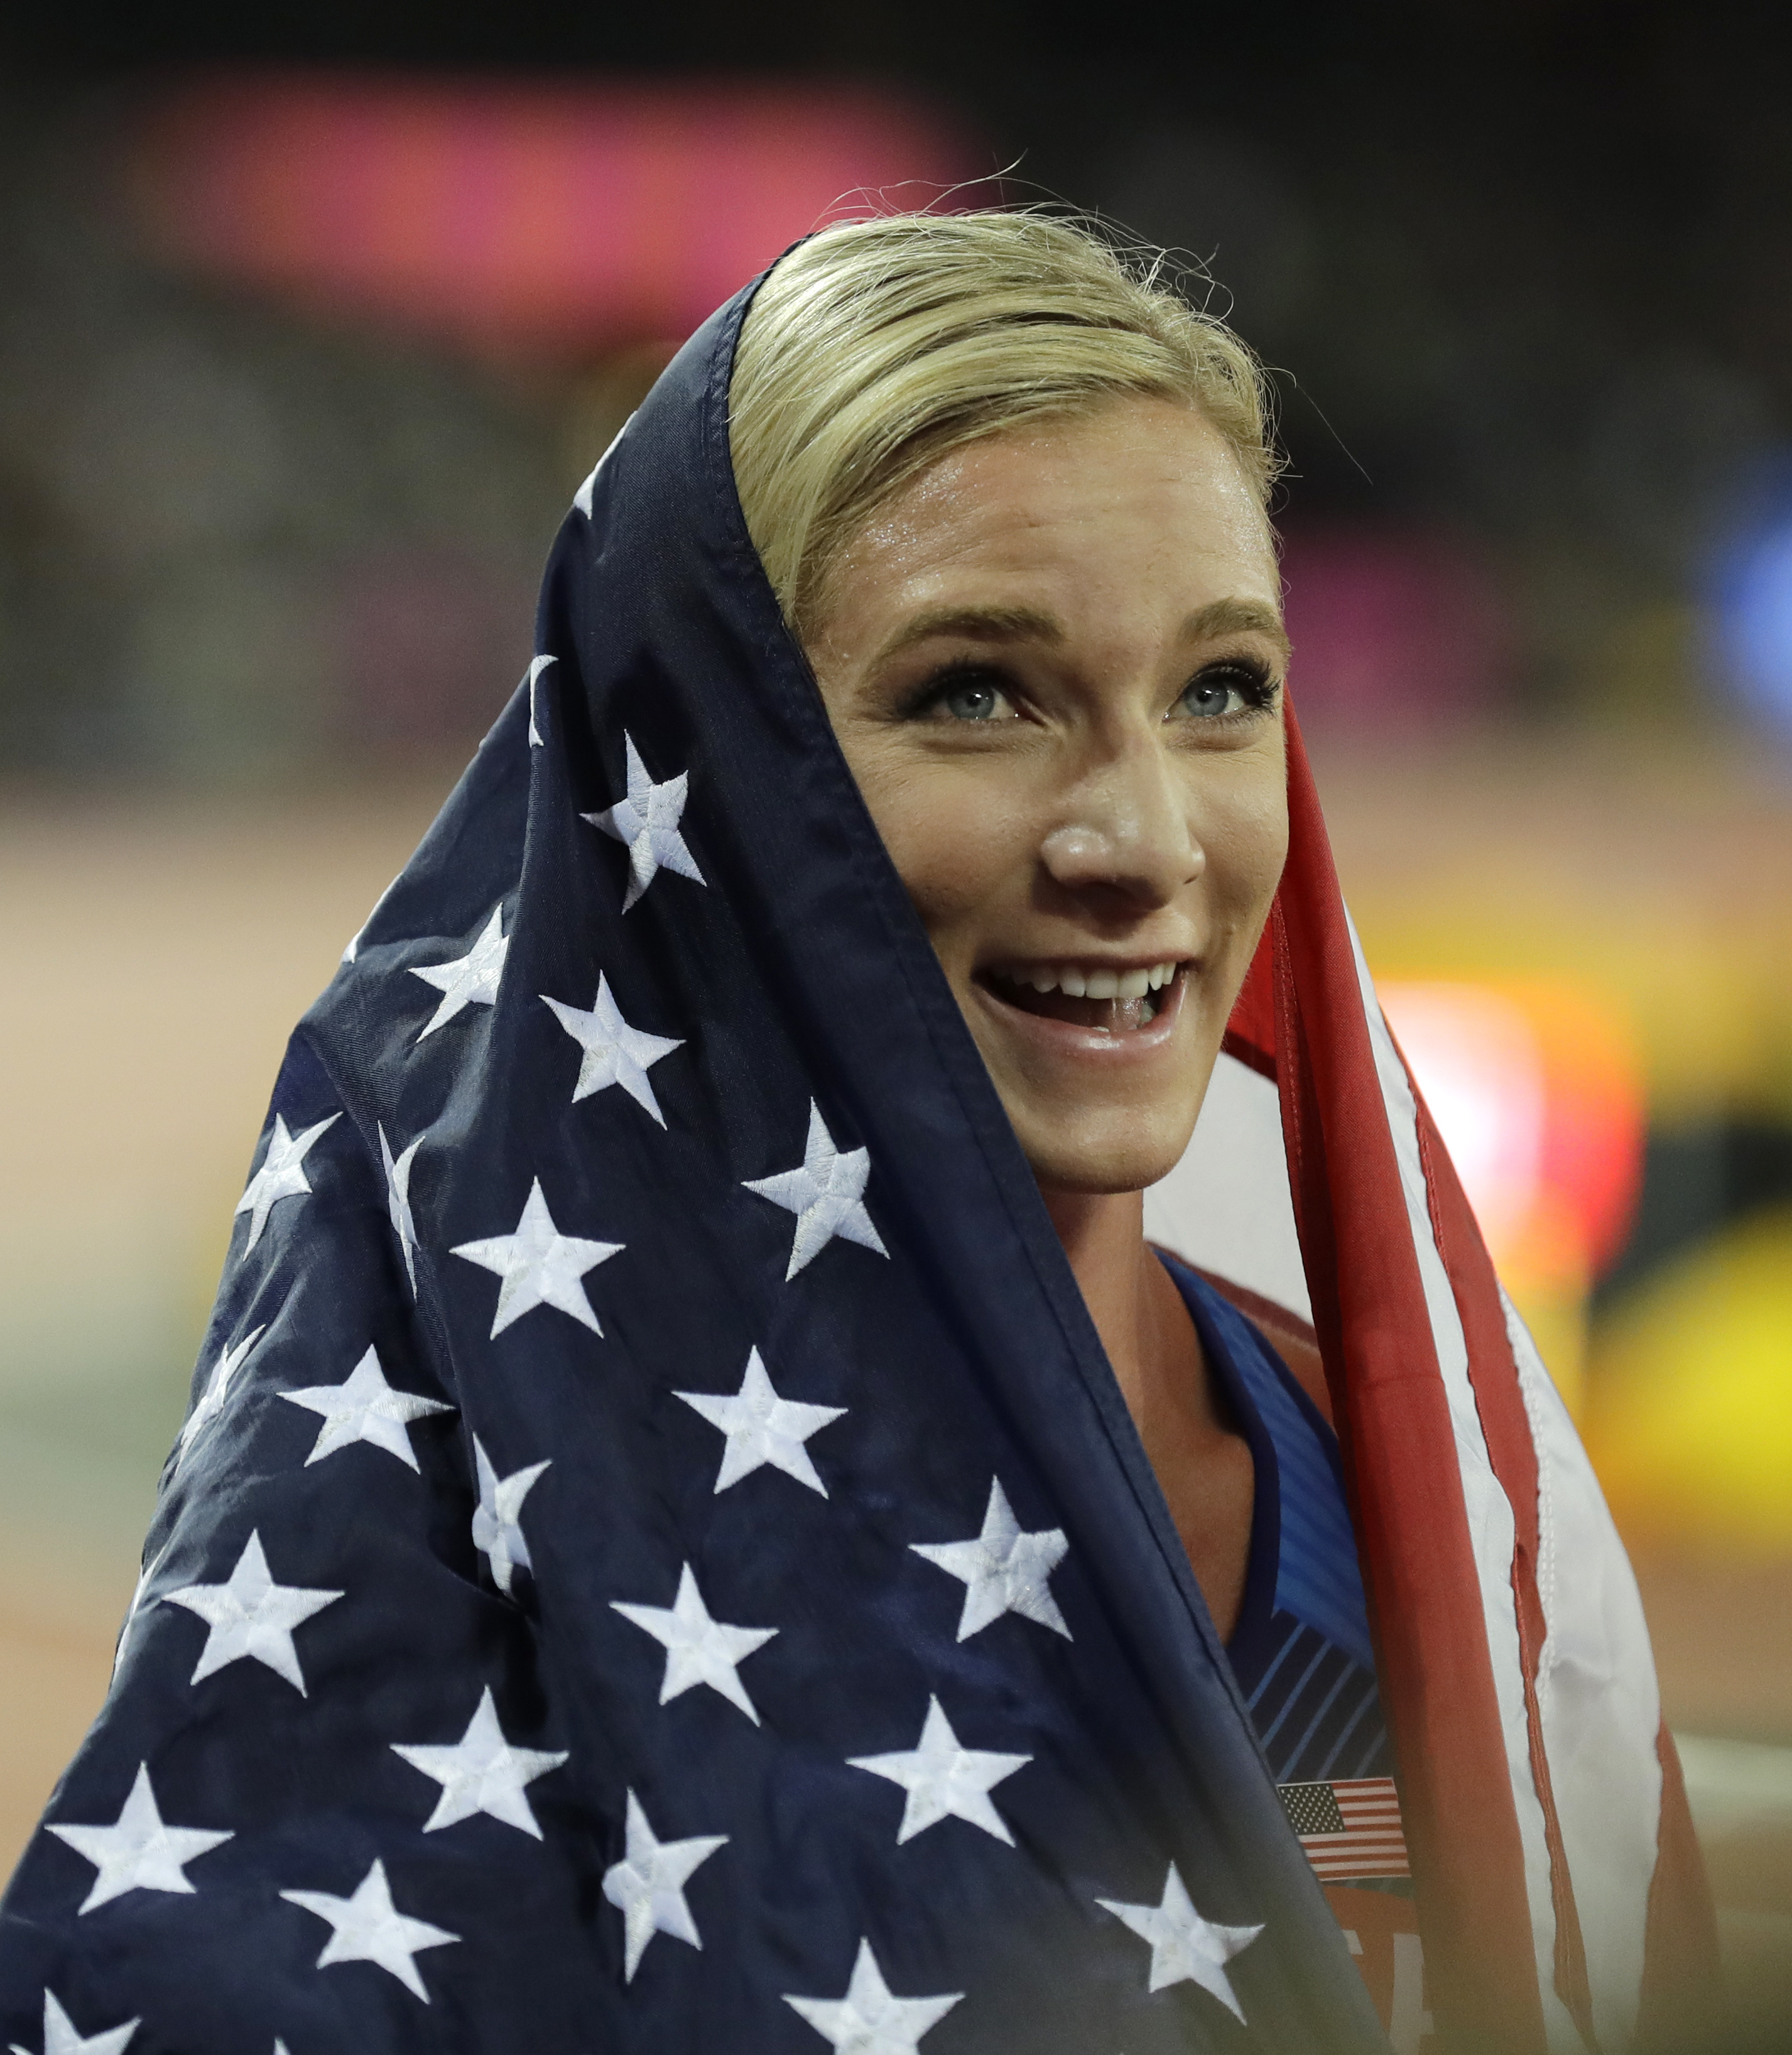 United States' Emma Coburn celebrates after winning the Women's 3000 meter steeplechase final during the World Athletics Championships in London Friday, Aug. 11, 2017. (AP Photo/Tim Ireland)